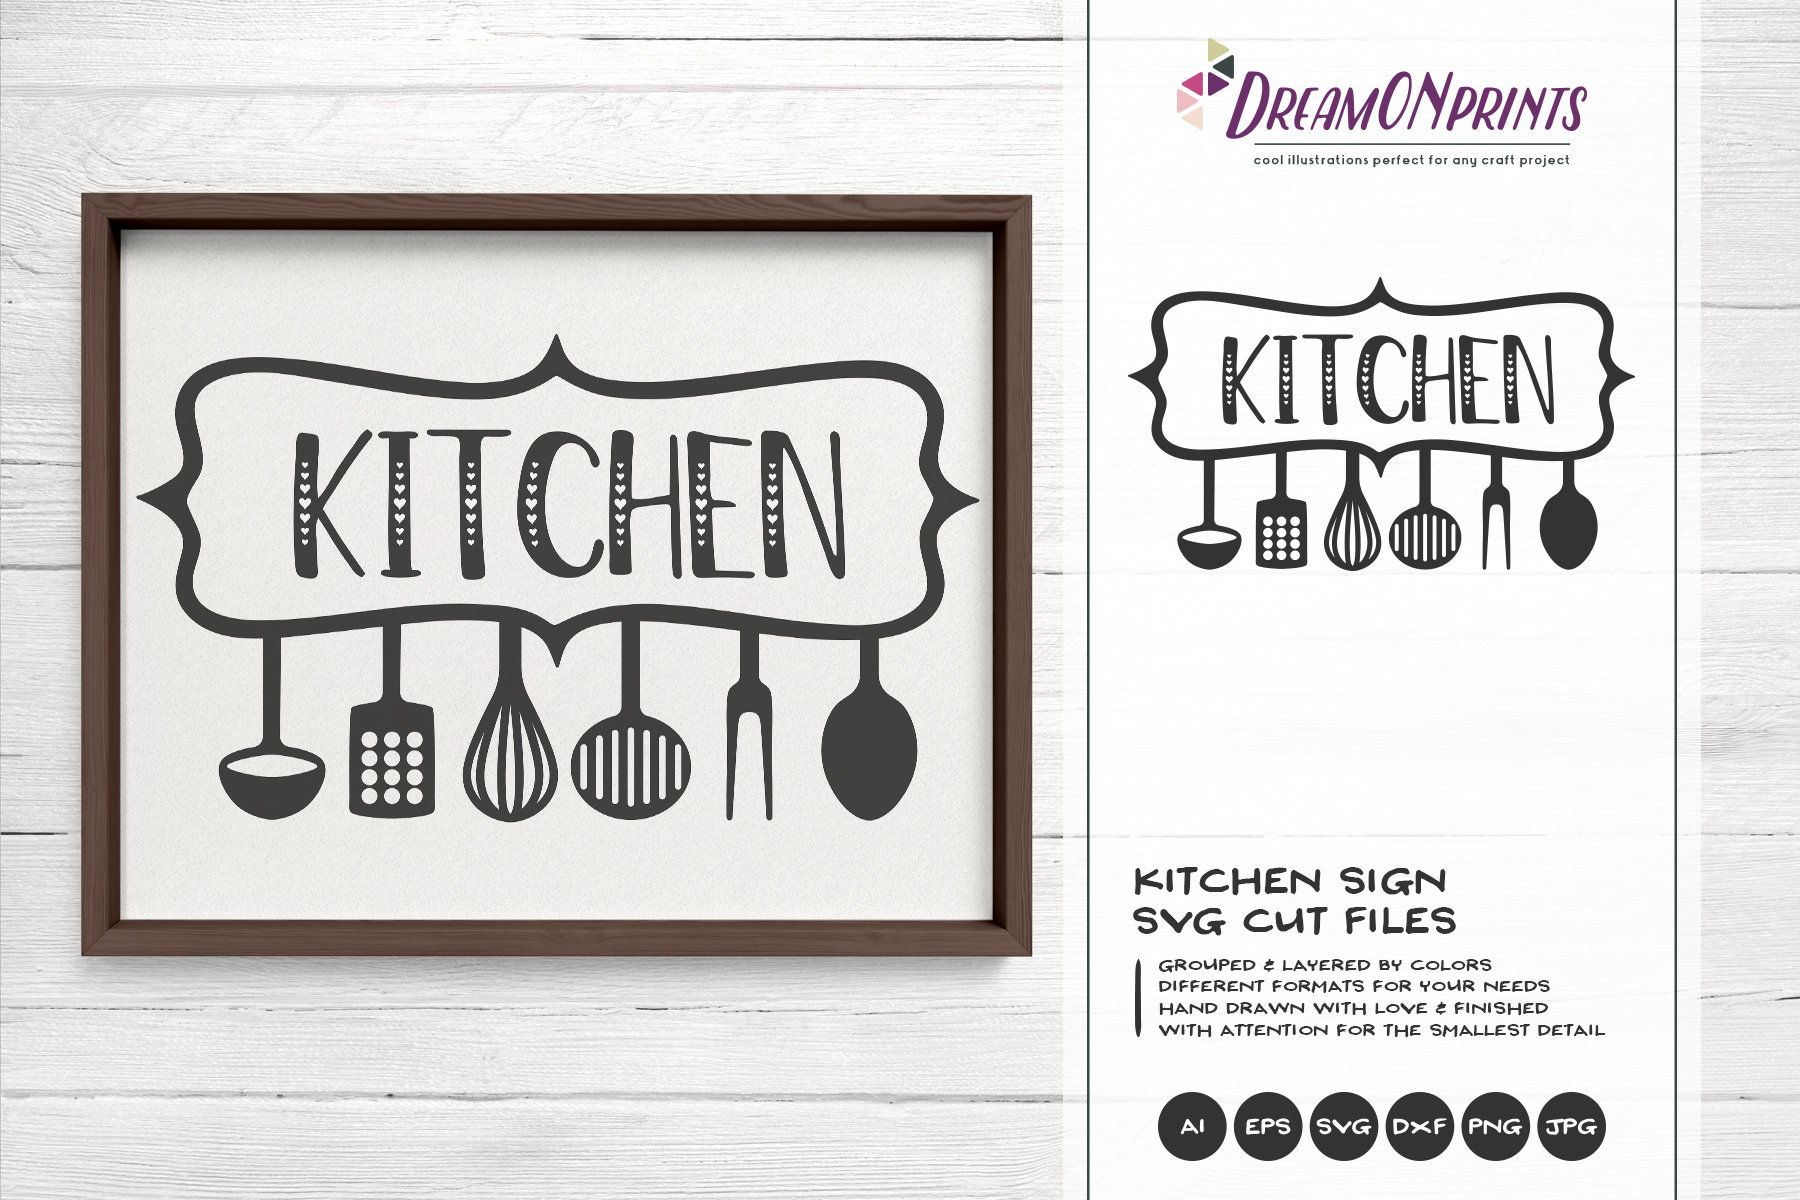 12695+ Free Svg Files For Cricut Kitchen Zip File